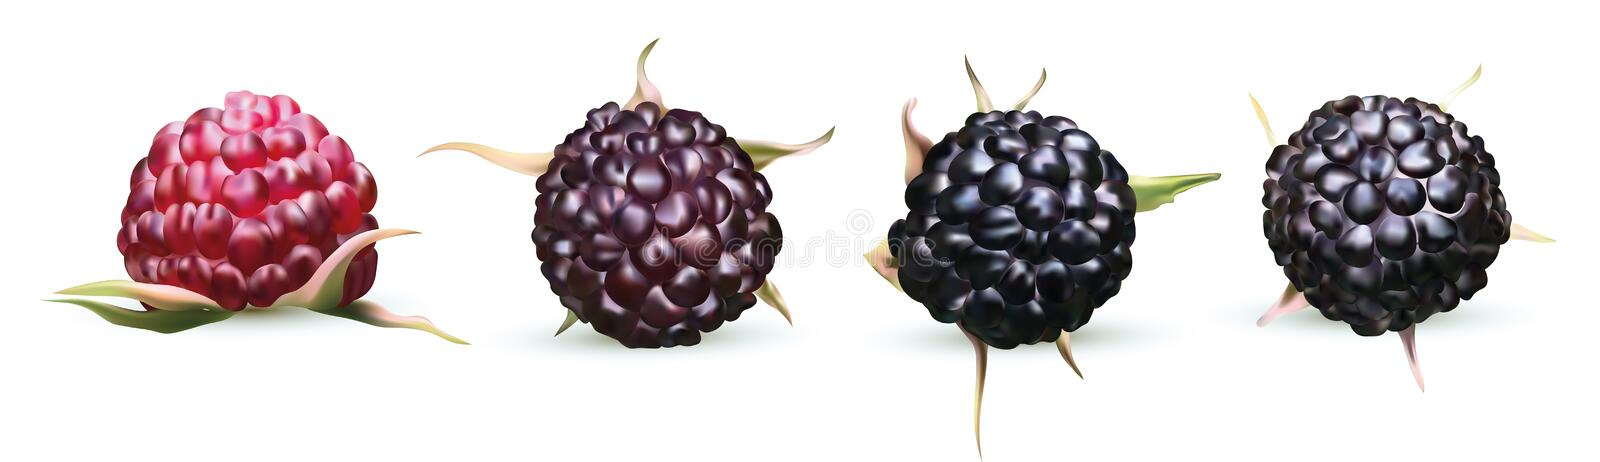 Vector illustration of blackberry isolated on white background. Collection ripe black raspberry. Summers, fresh berry. Close up. 3D realistic illustration royalty free illustration